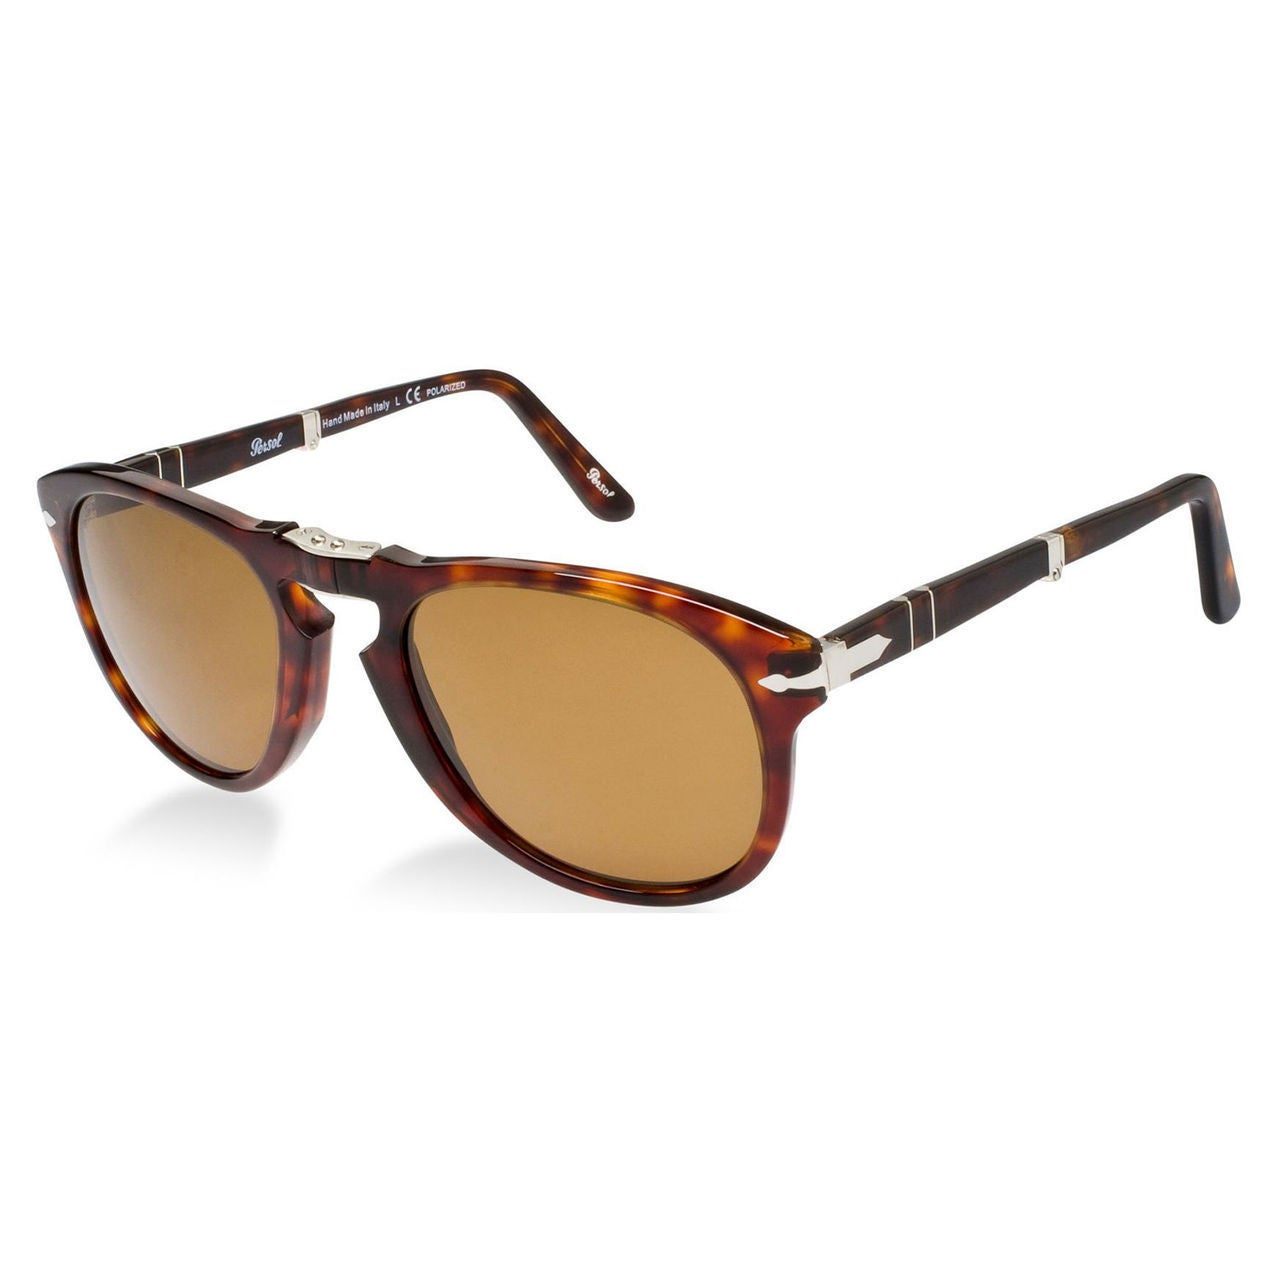 5cd72291483 Persol Men s Steve McQueen 24 57 Havana Foldable Plastic Polarized  Sunglasses